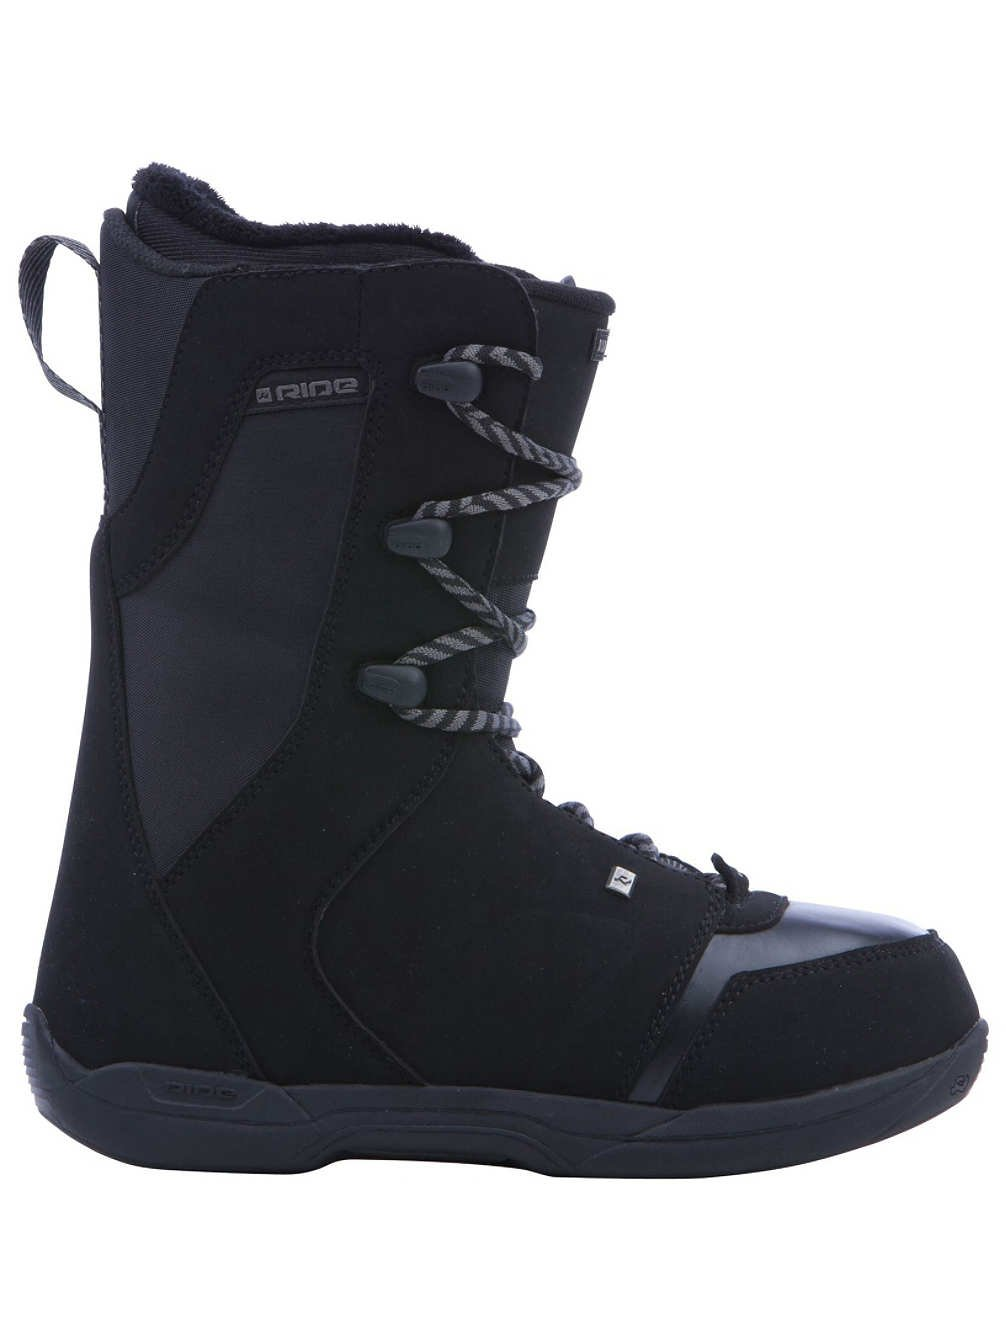 Ride Donna Boot Black Women's 8 by Ride Snowboards